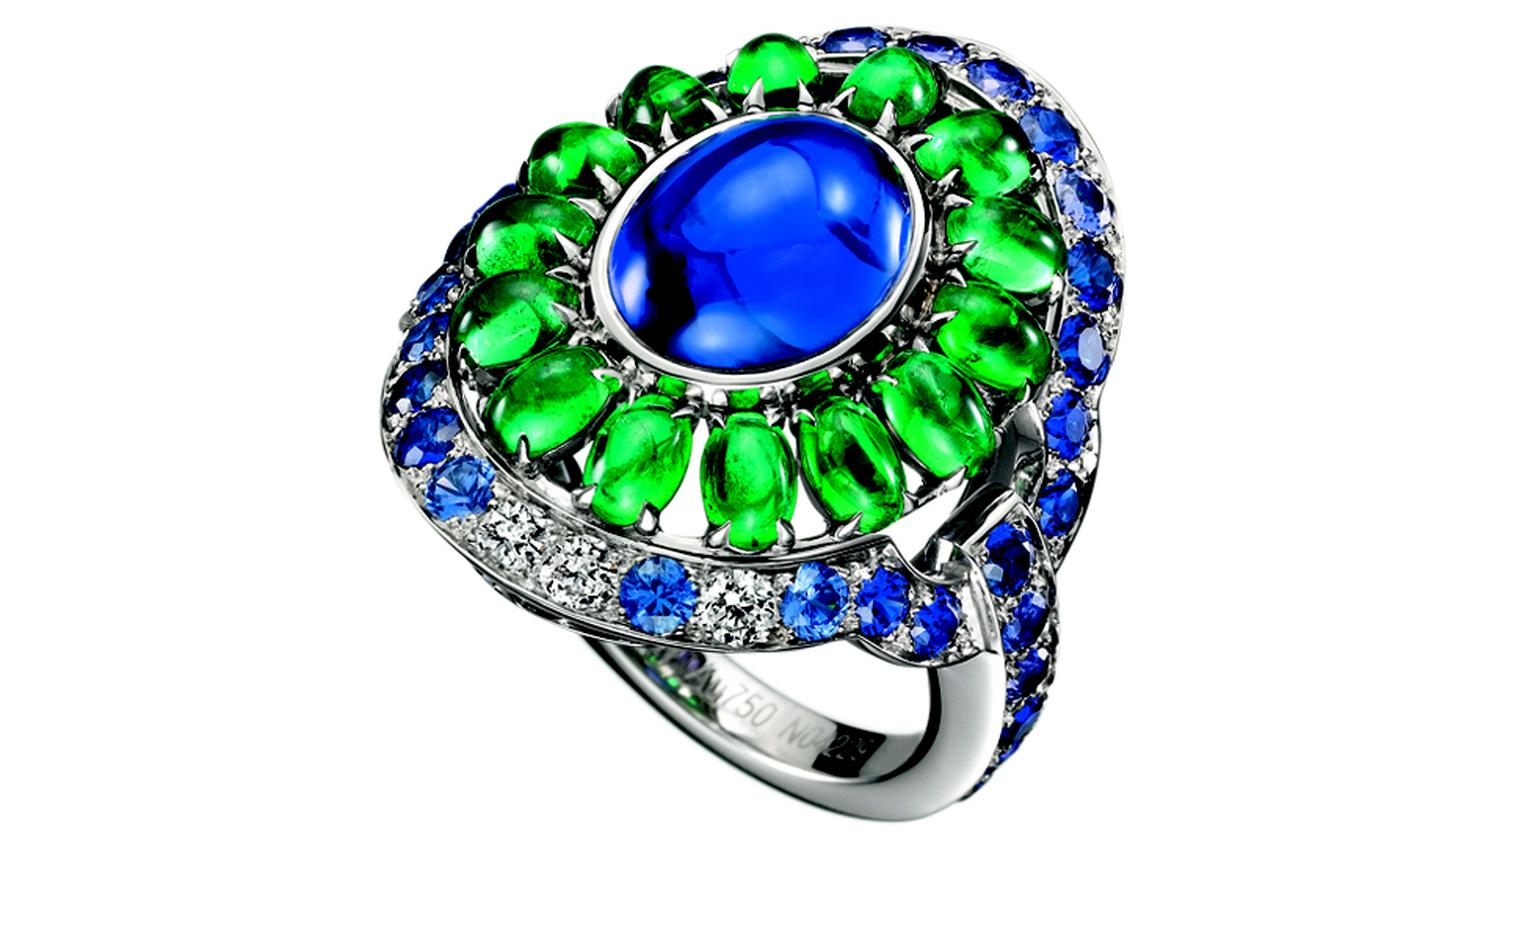 BOUCHERON. Capriccioli ring, set with an oval cabochon sapphire, paved with emerald beads, blue and purple sapphires and diamonds, on white gold. POA